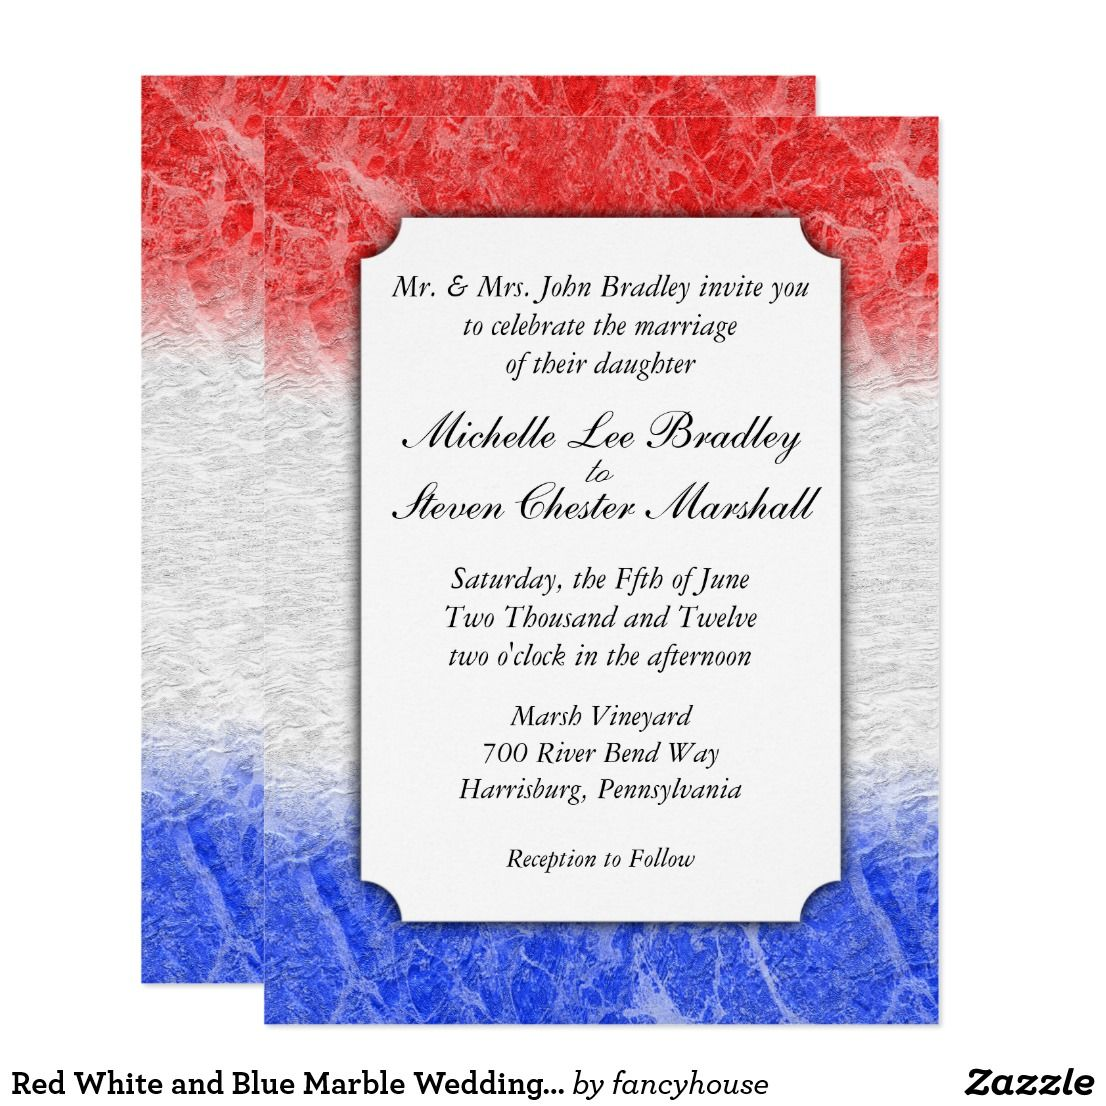 Red White and Blue Marble Wedding Invitations #sale | Military ...